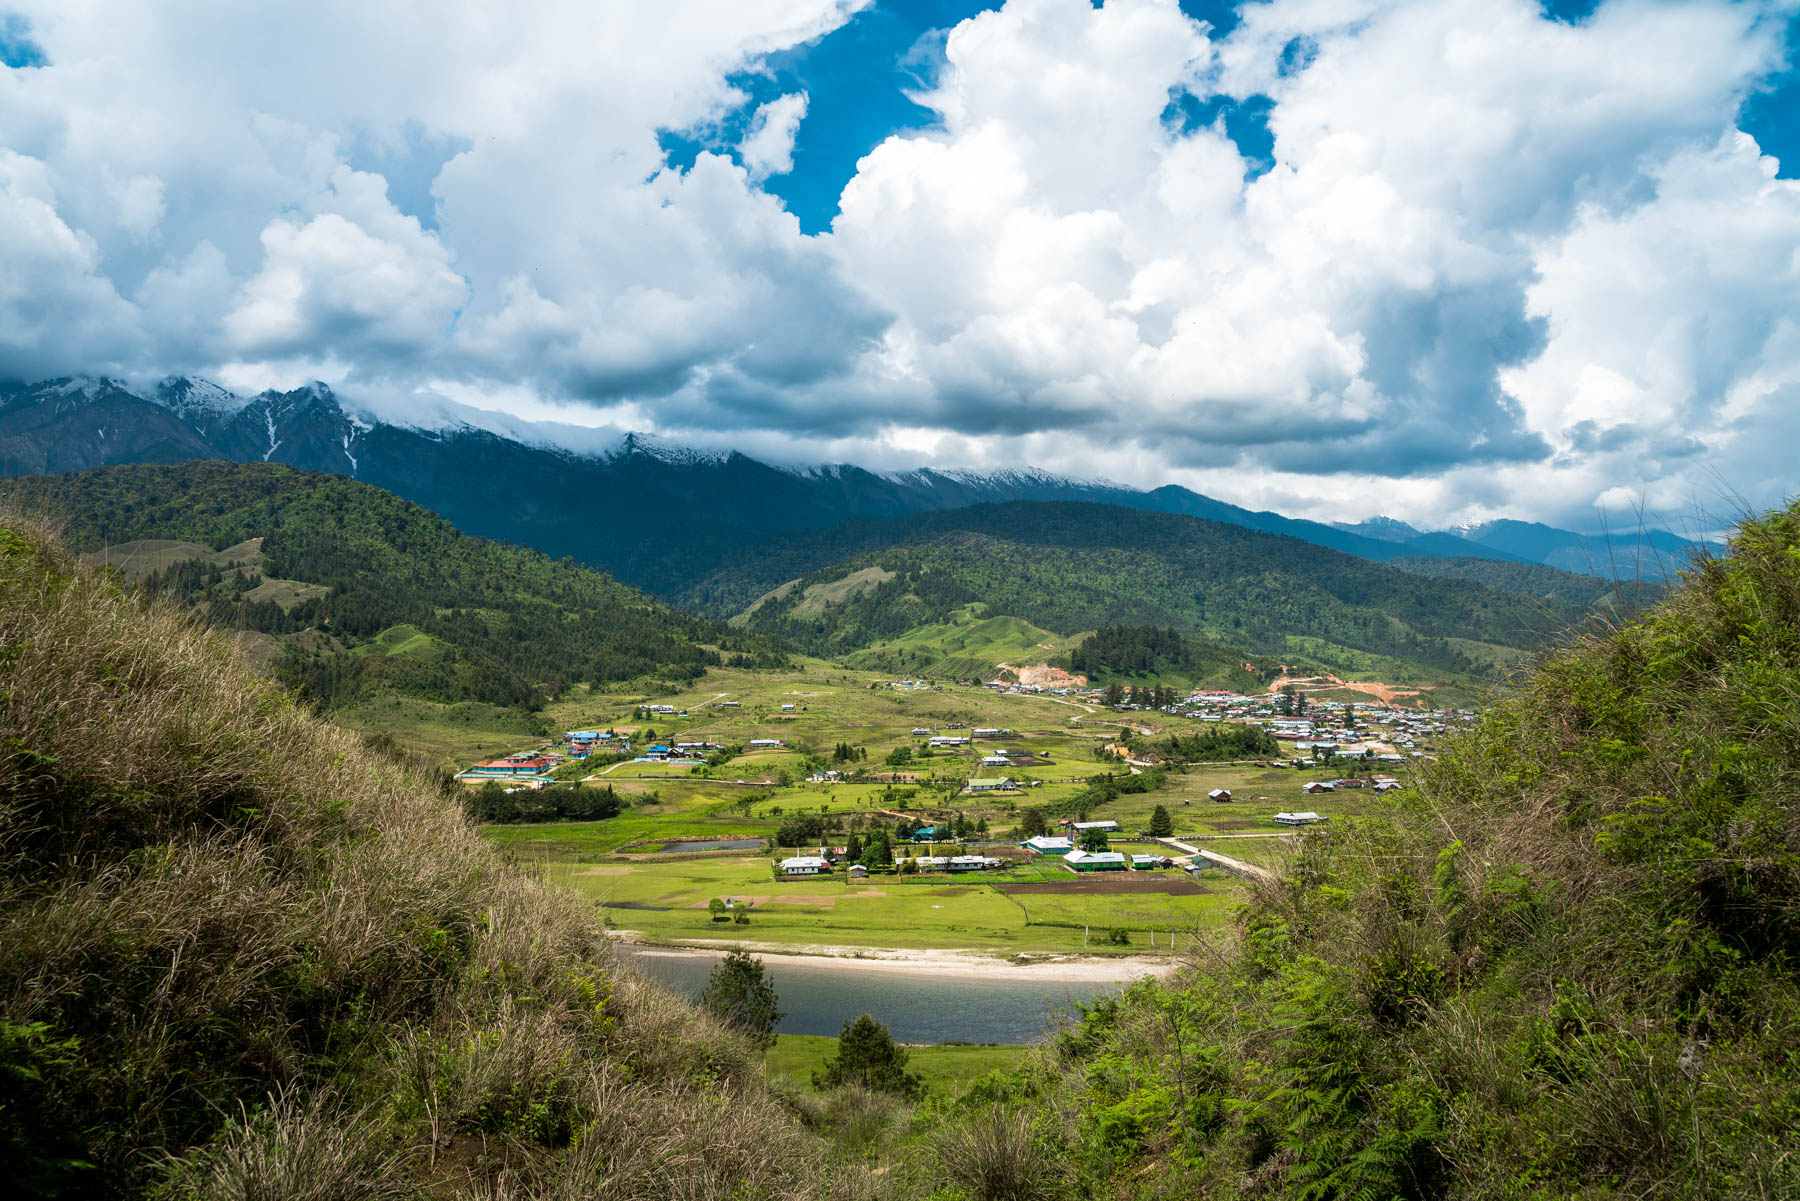 Travel guide to backpacking in Arunachal Pradesh - Mechuka through the hills - Lost With Purpose